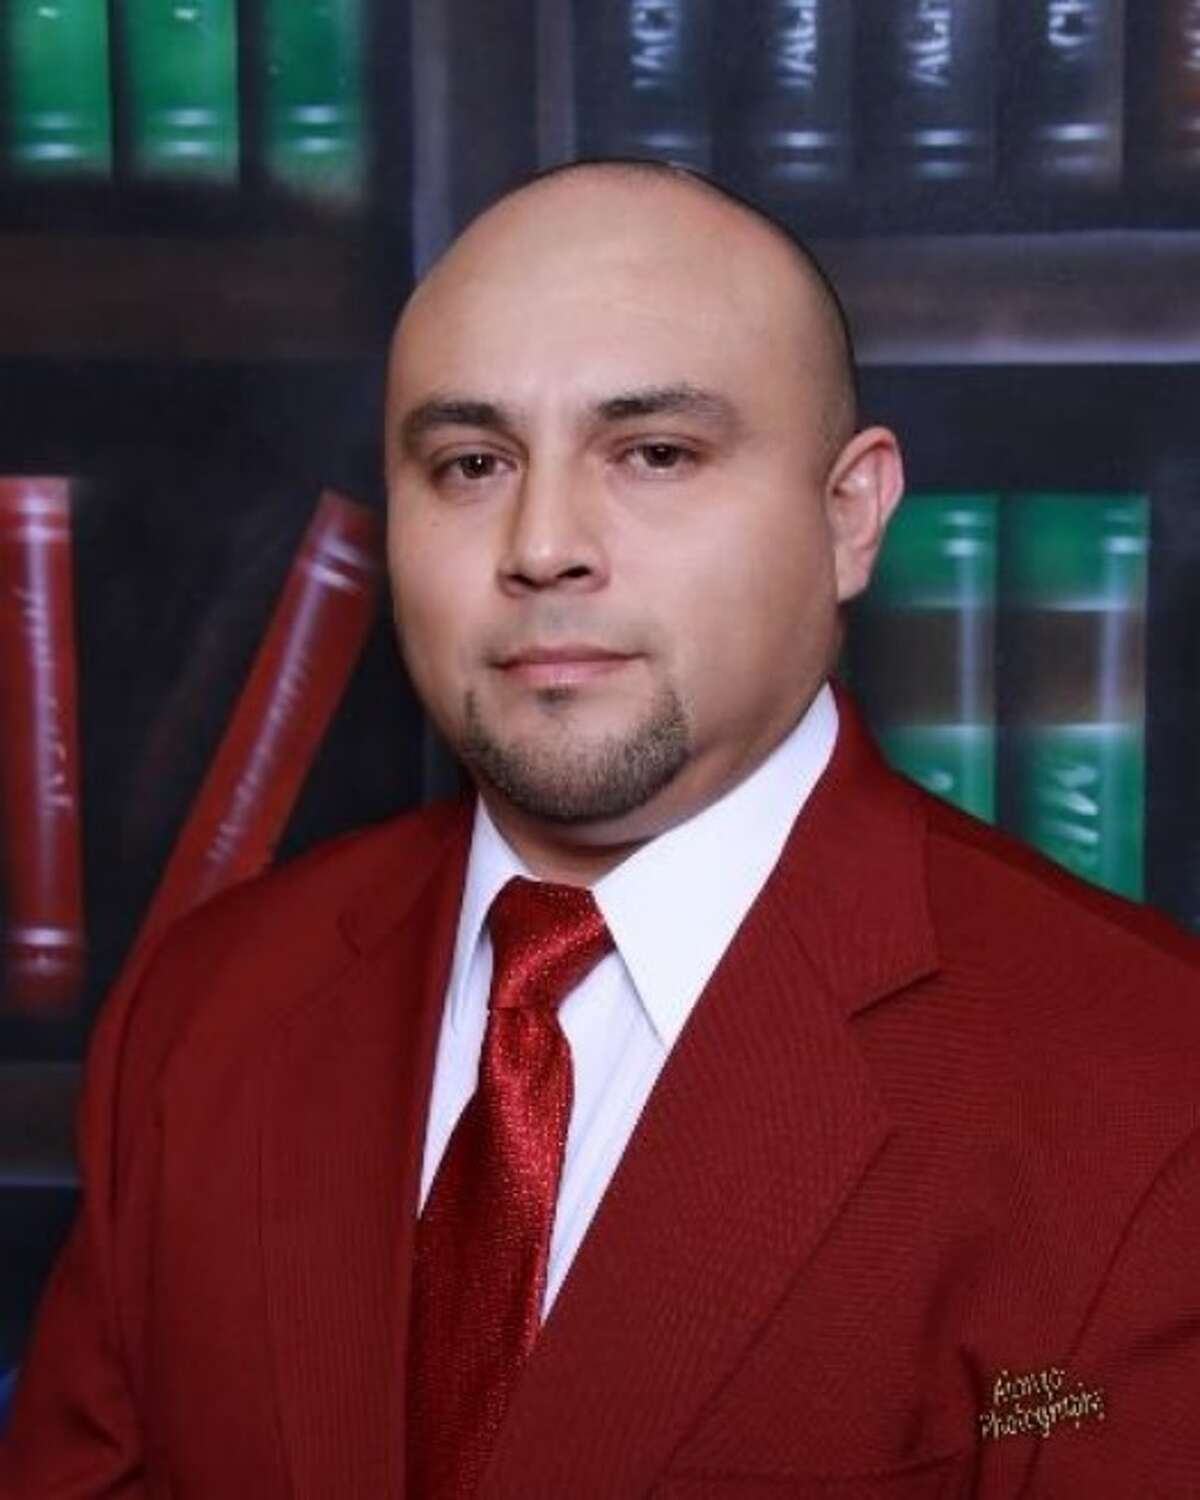 Elipidio Yanez, Jr., a board member at Donna ISD, was charged with federal bribery charges in November 2015.